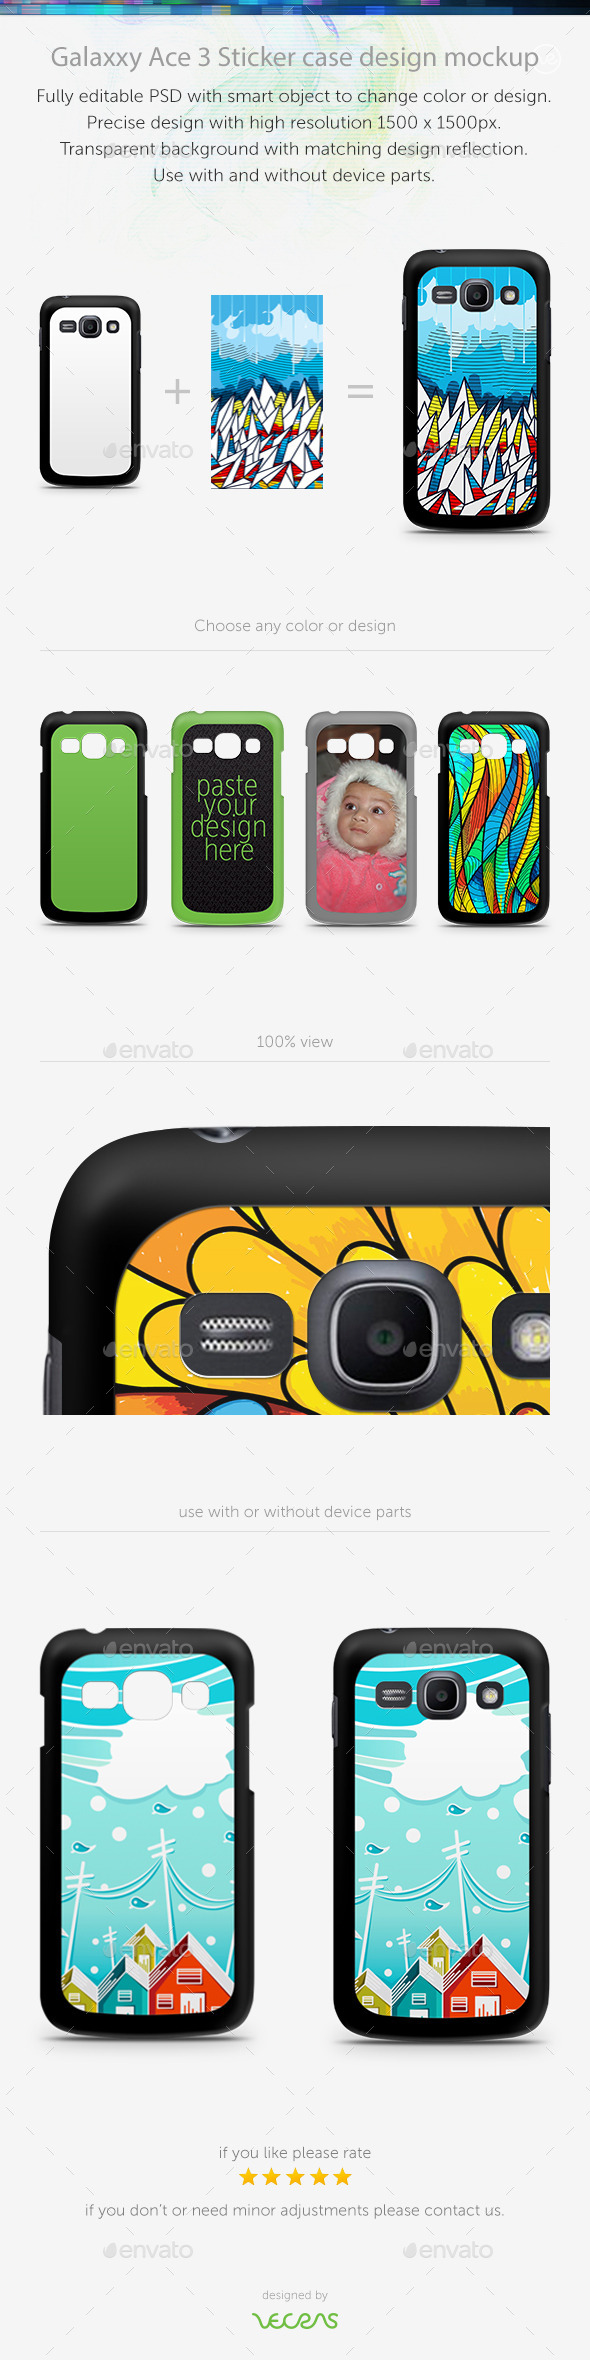 GraphicRiver Galaxxy Ace 3 Sticker Case Design Mockup 10793974